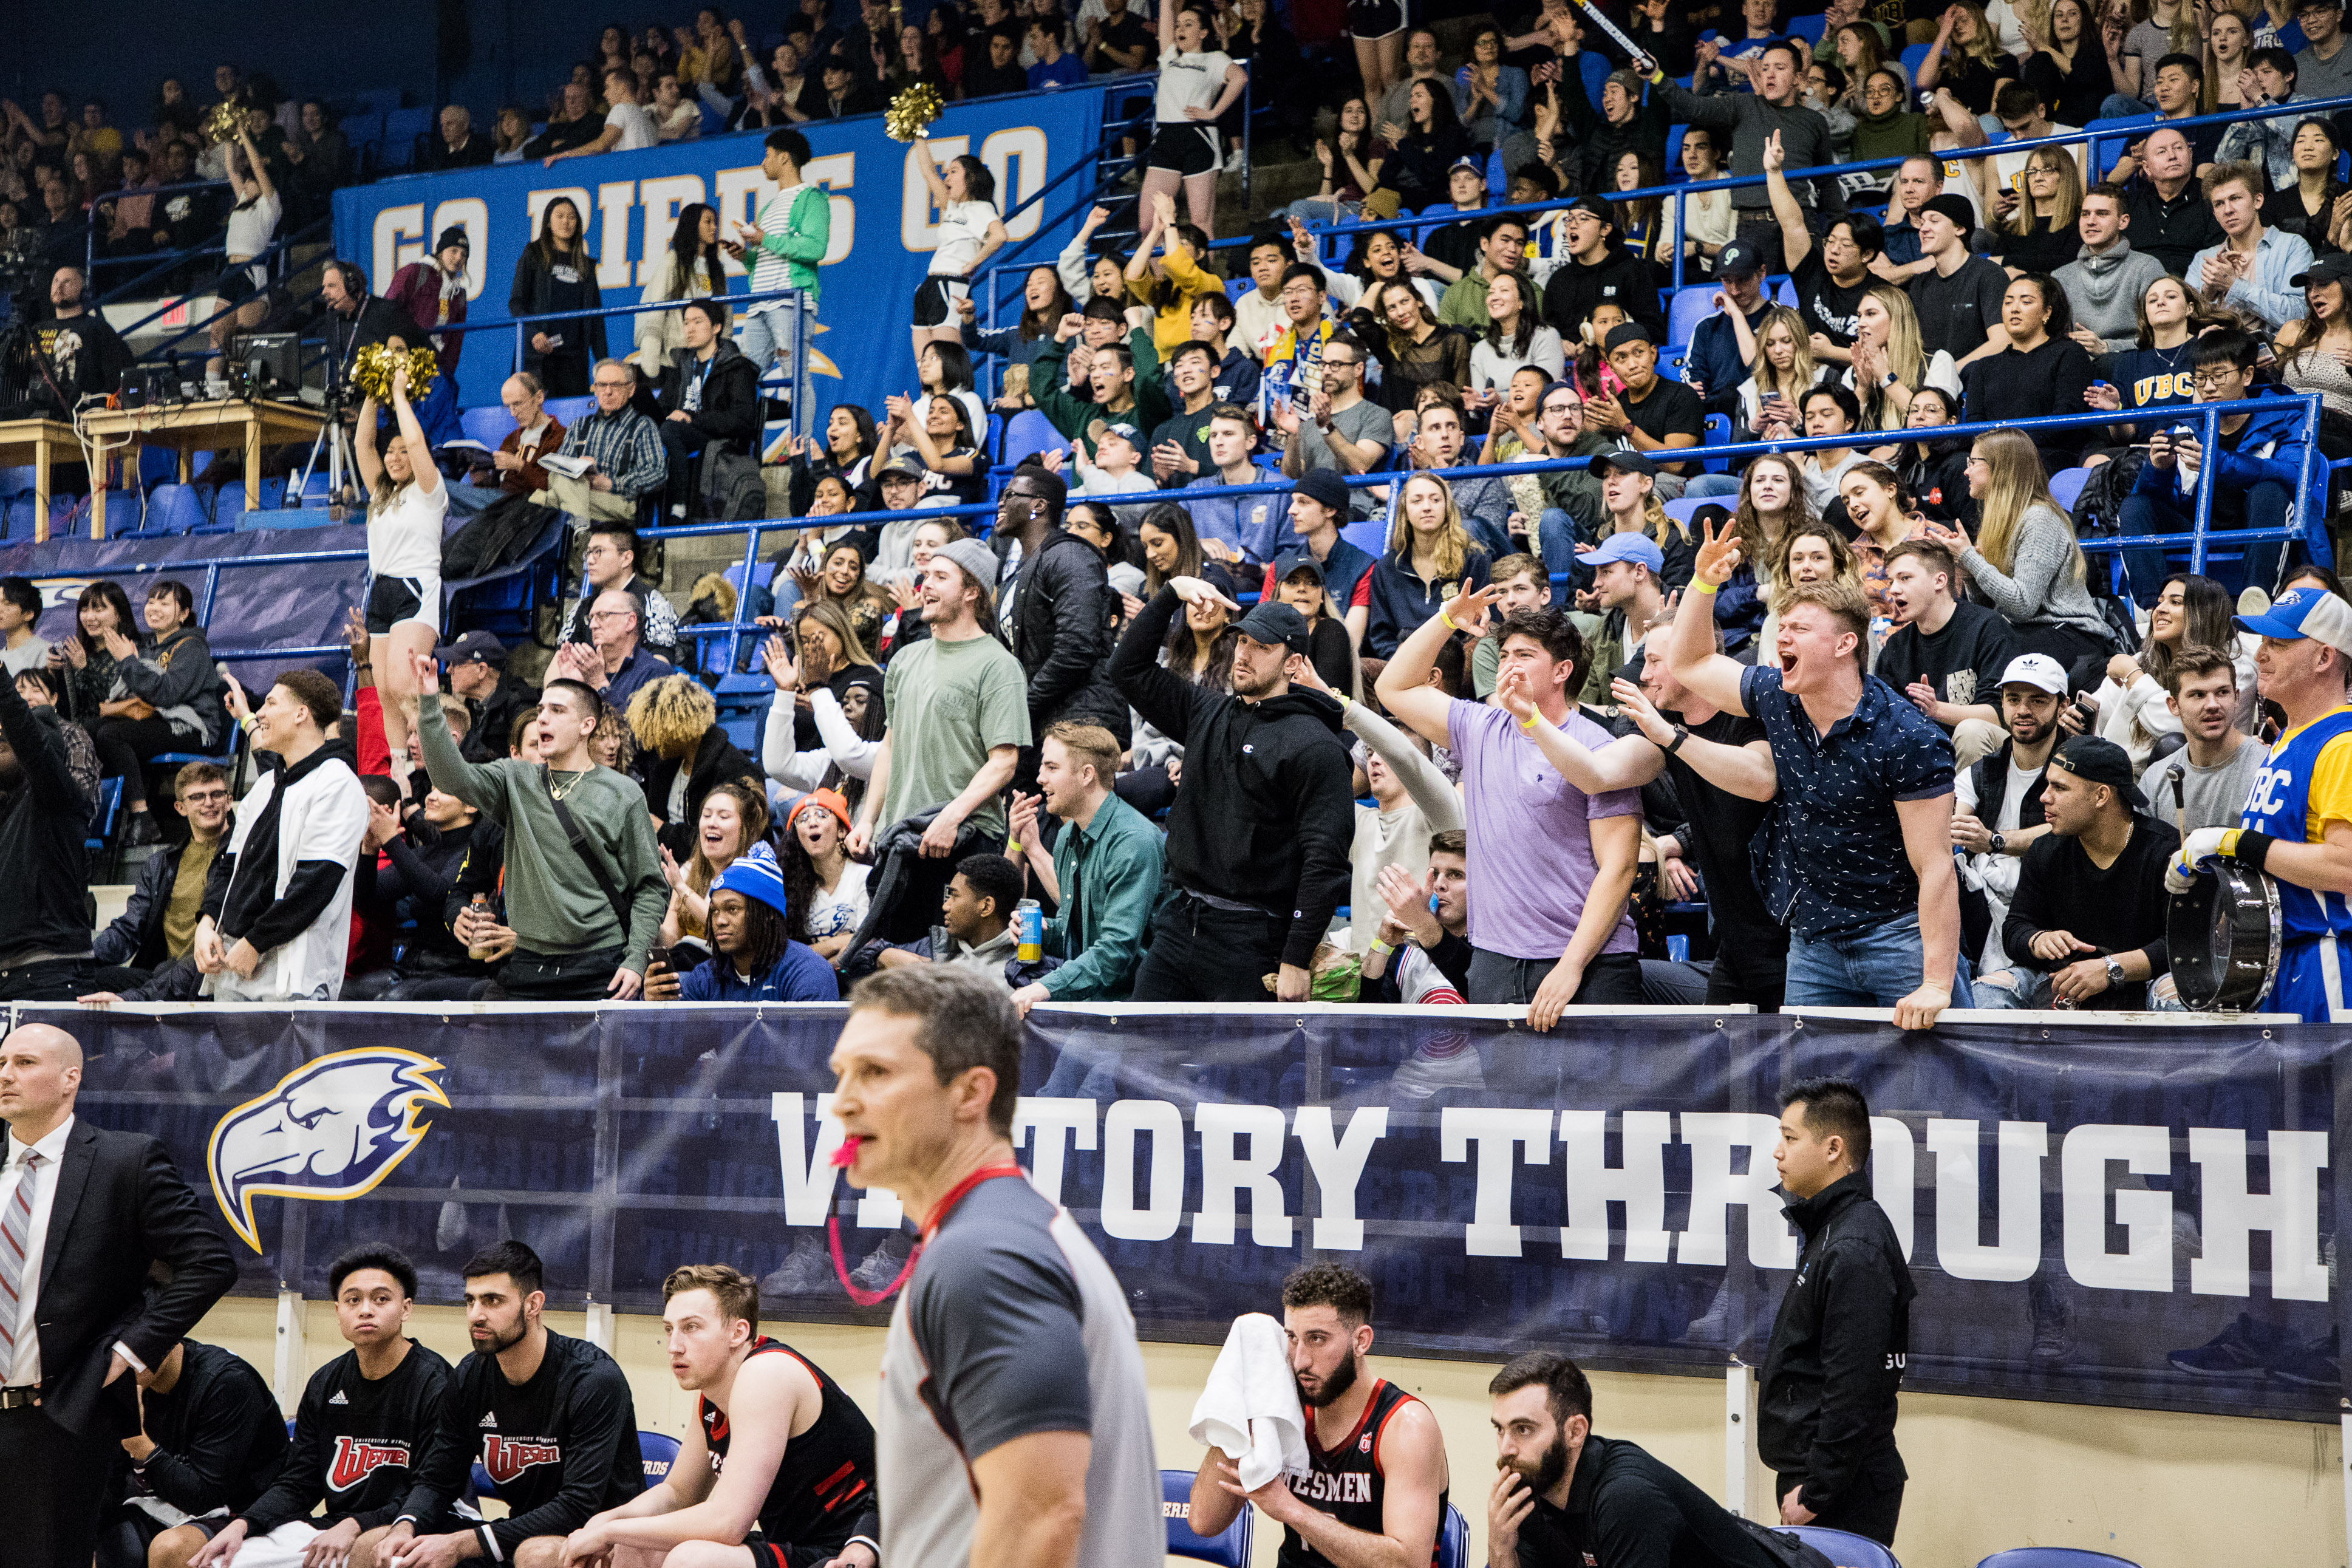 Fans yelled out after the T-Birds make a three-pointer.